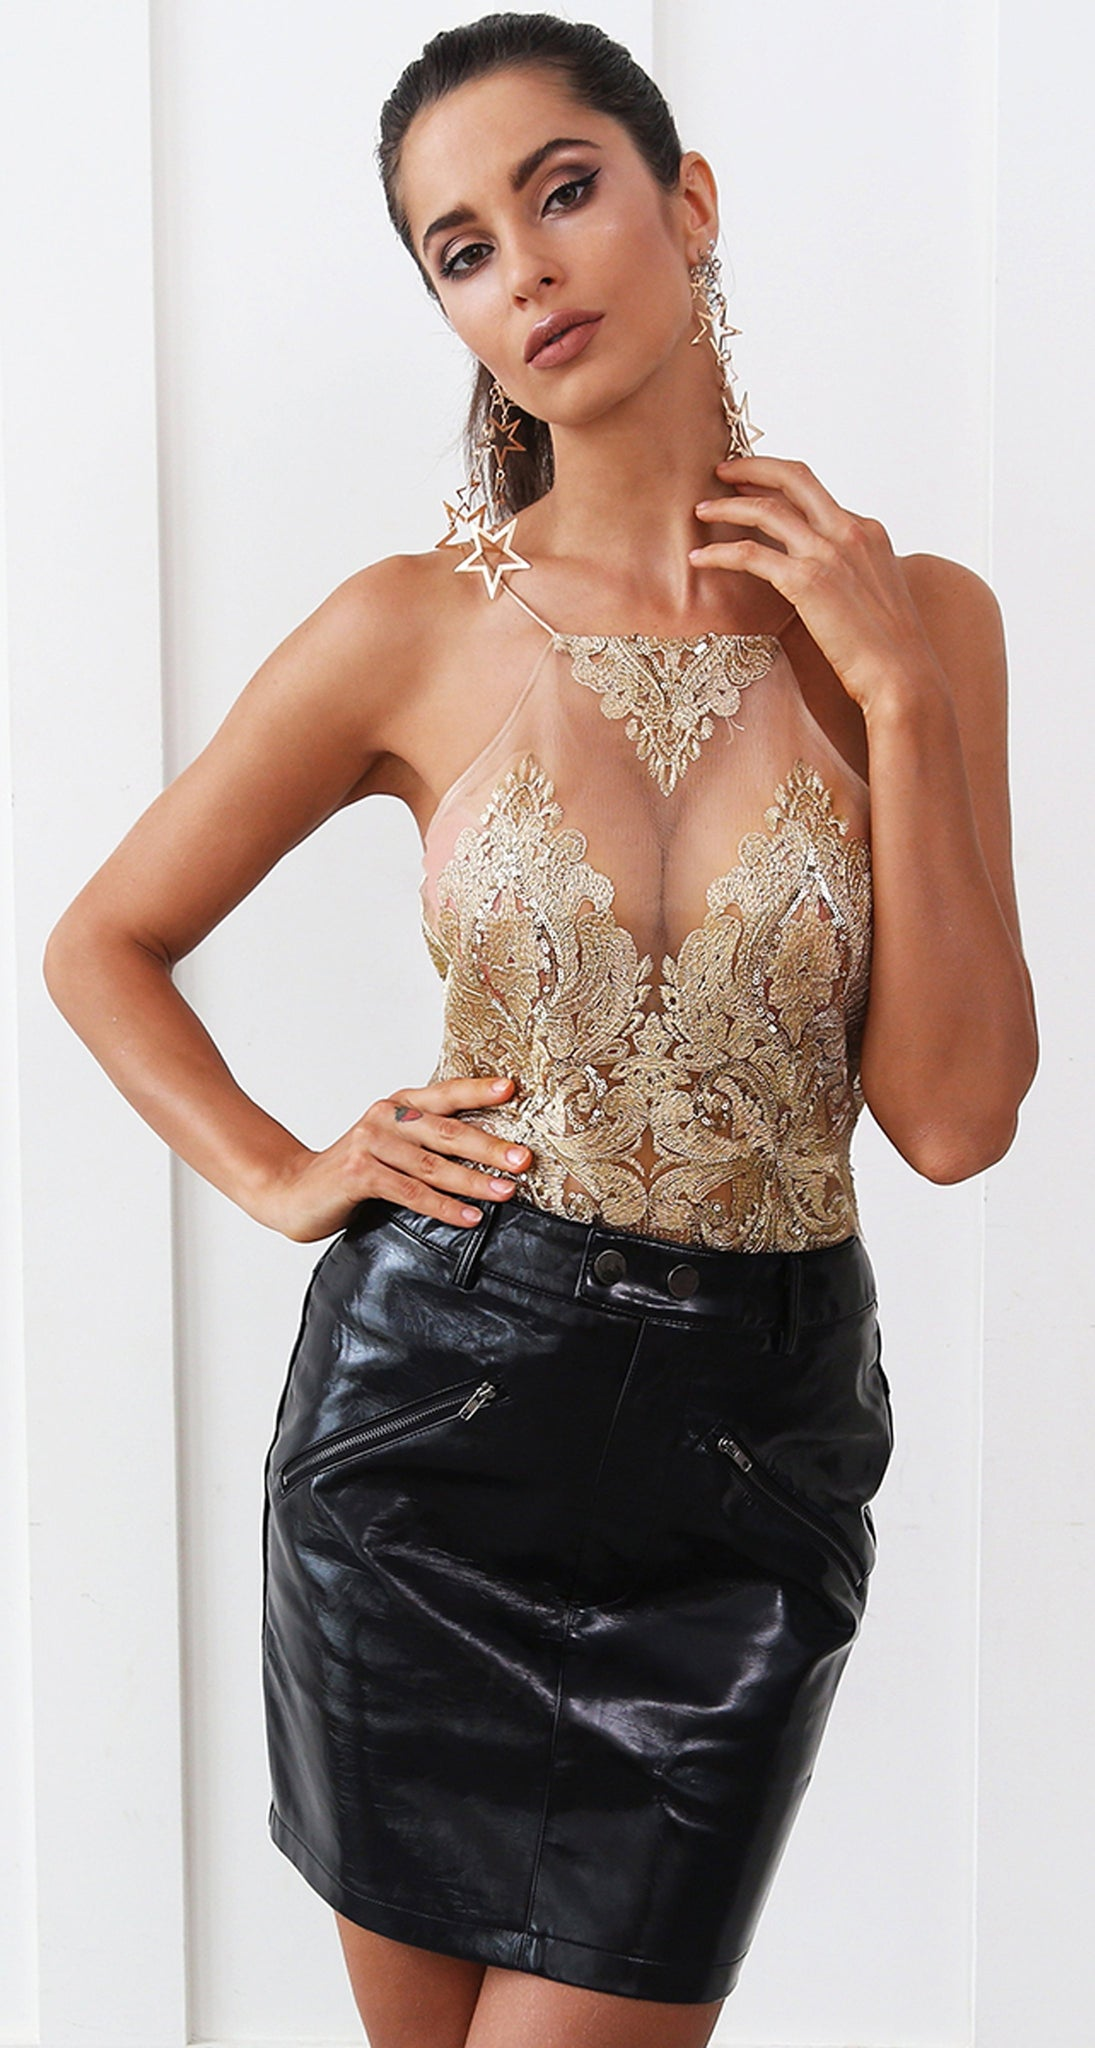 a9f146b64a ... New Years Eve Party Outfit Ideas for Women - Hot Clubbing Baddie Mesh  Gold Floral Sequin ...